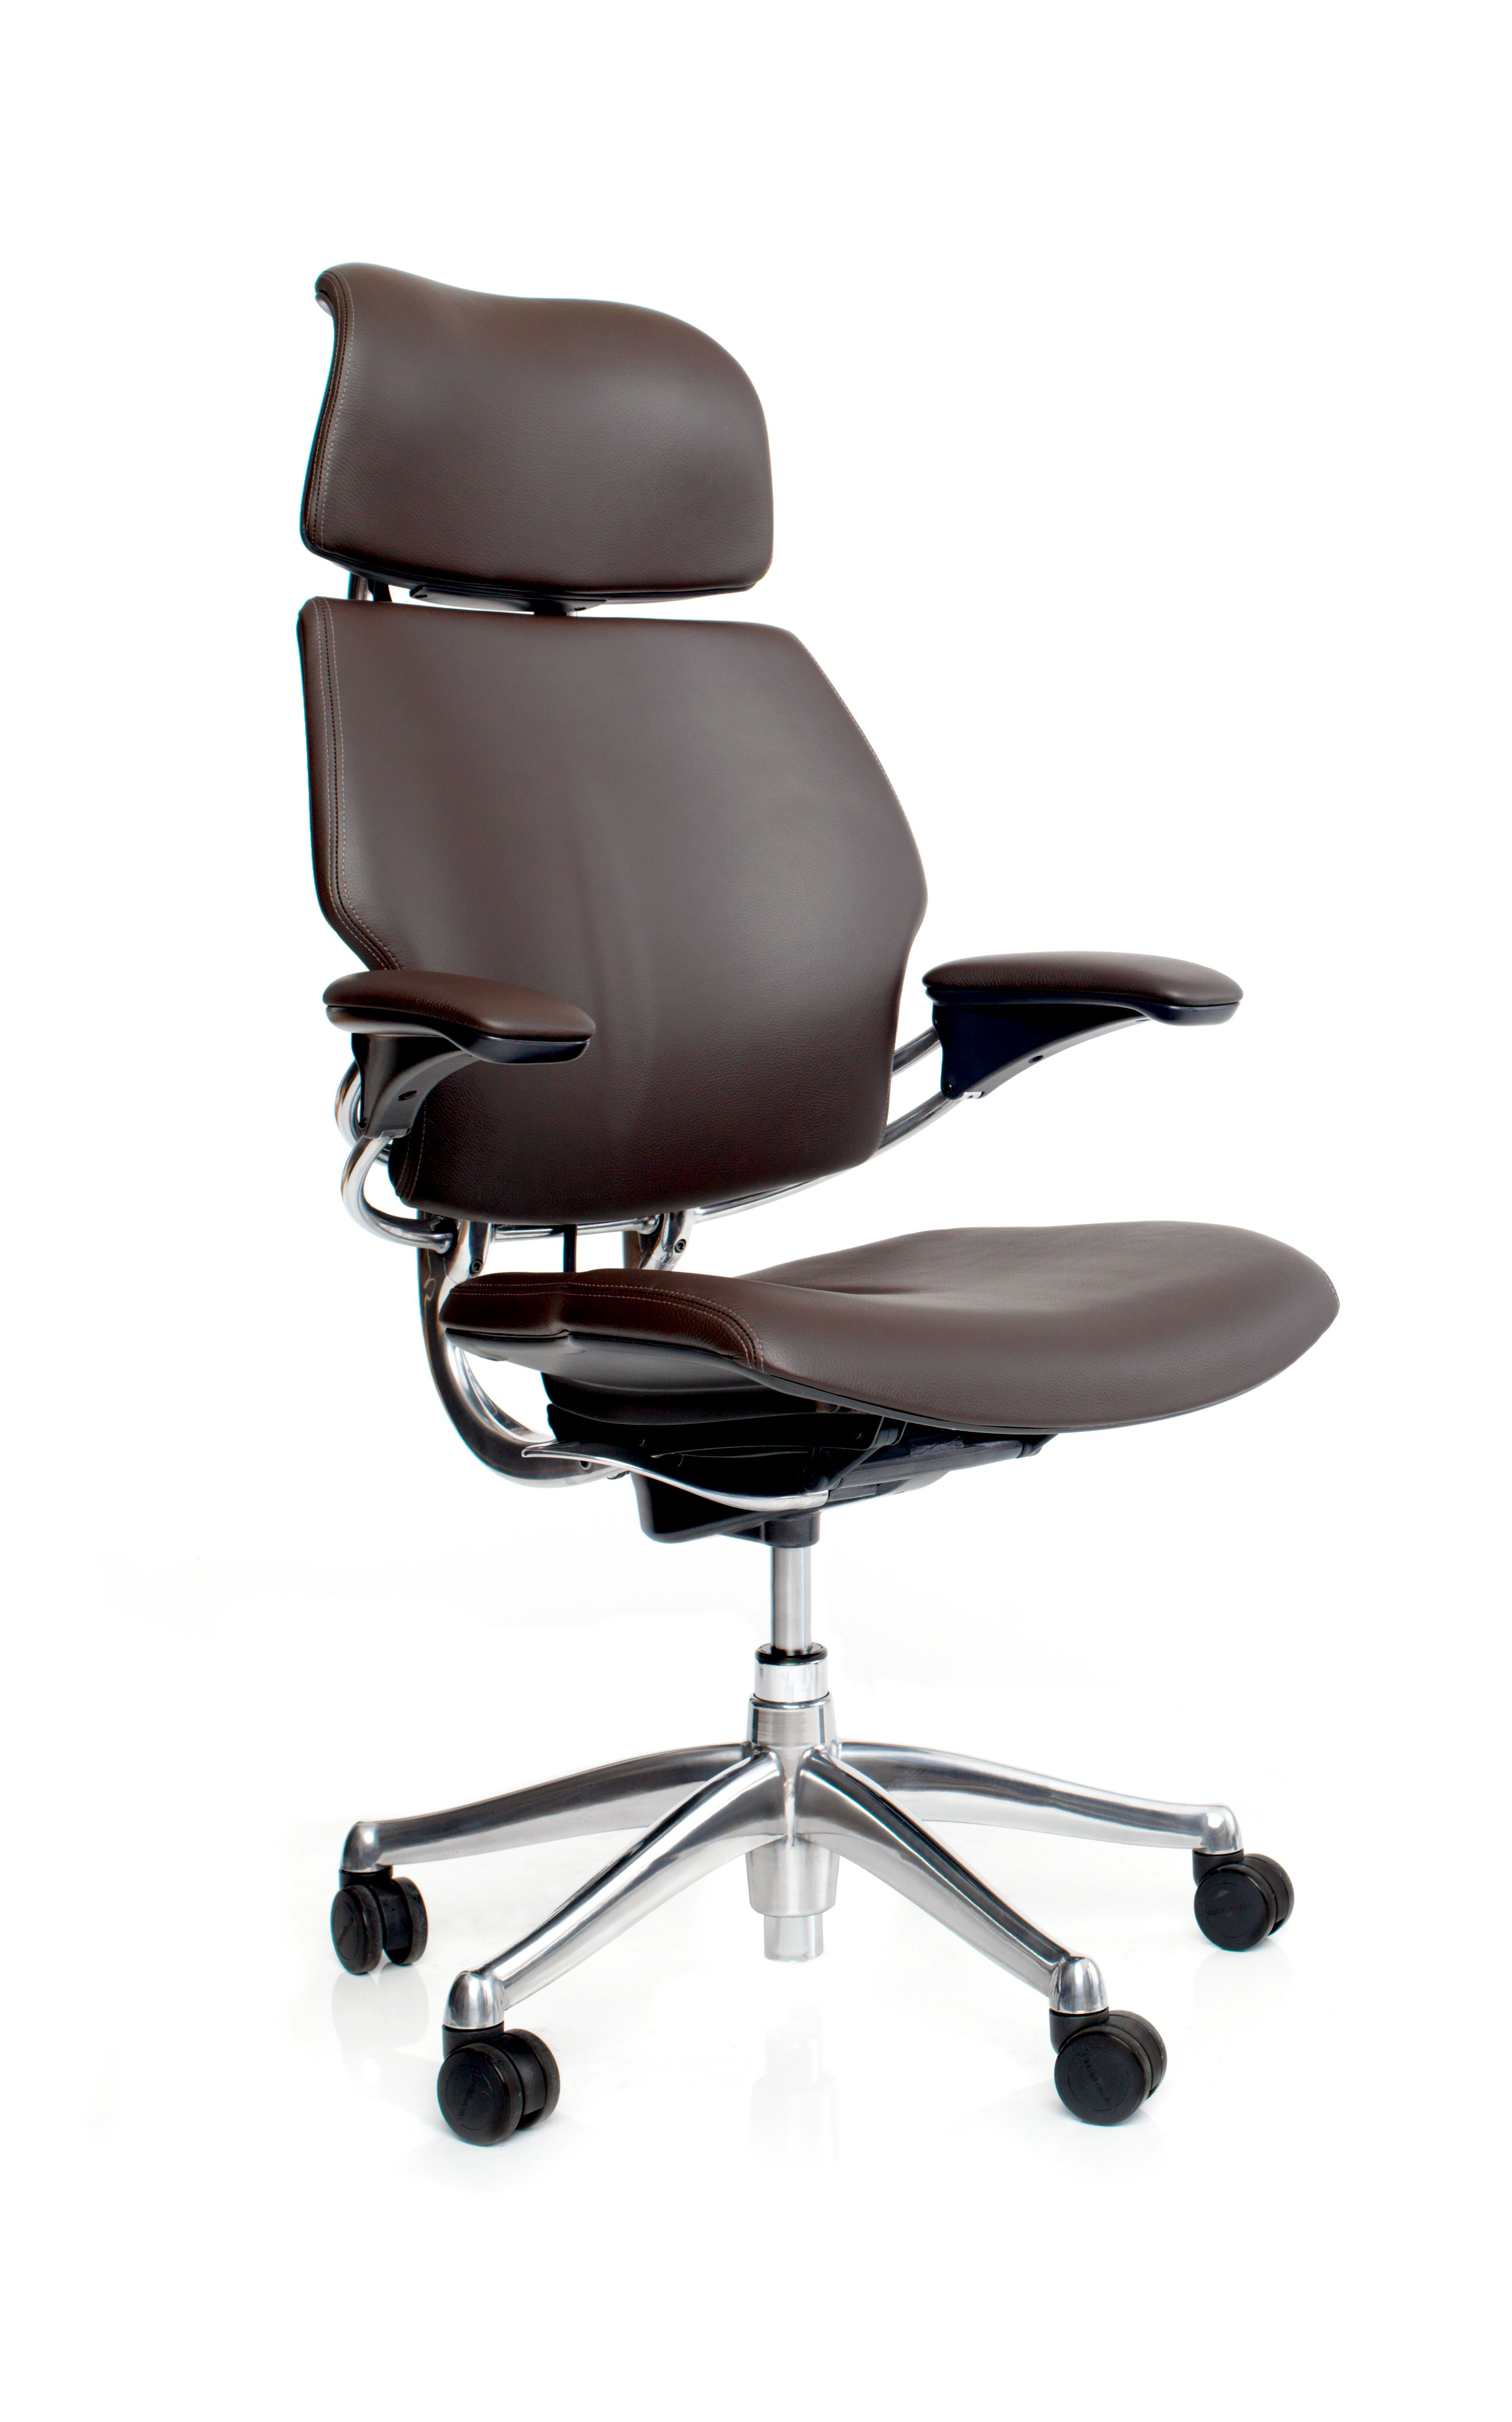 Freedom Headrest Chair Humanscale Niels Diffrient Brown